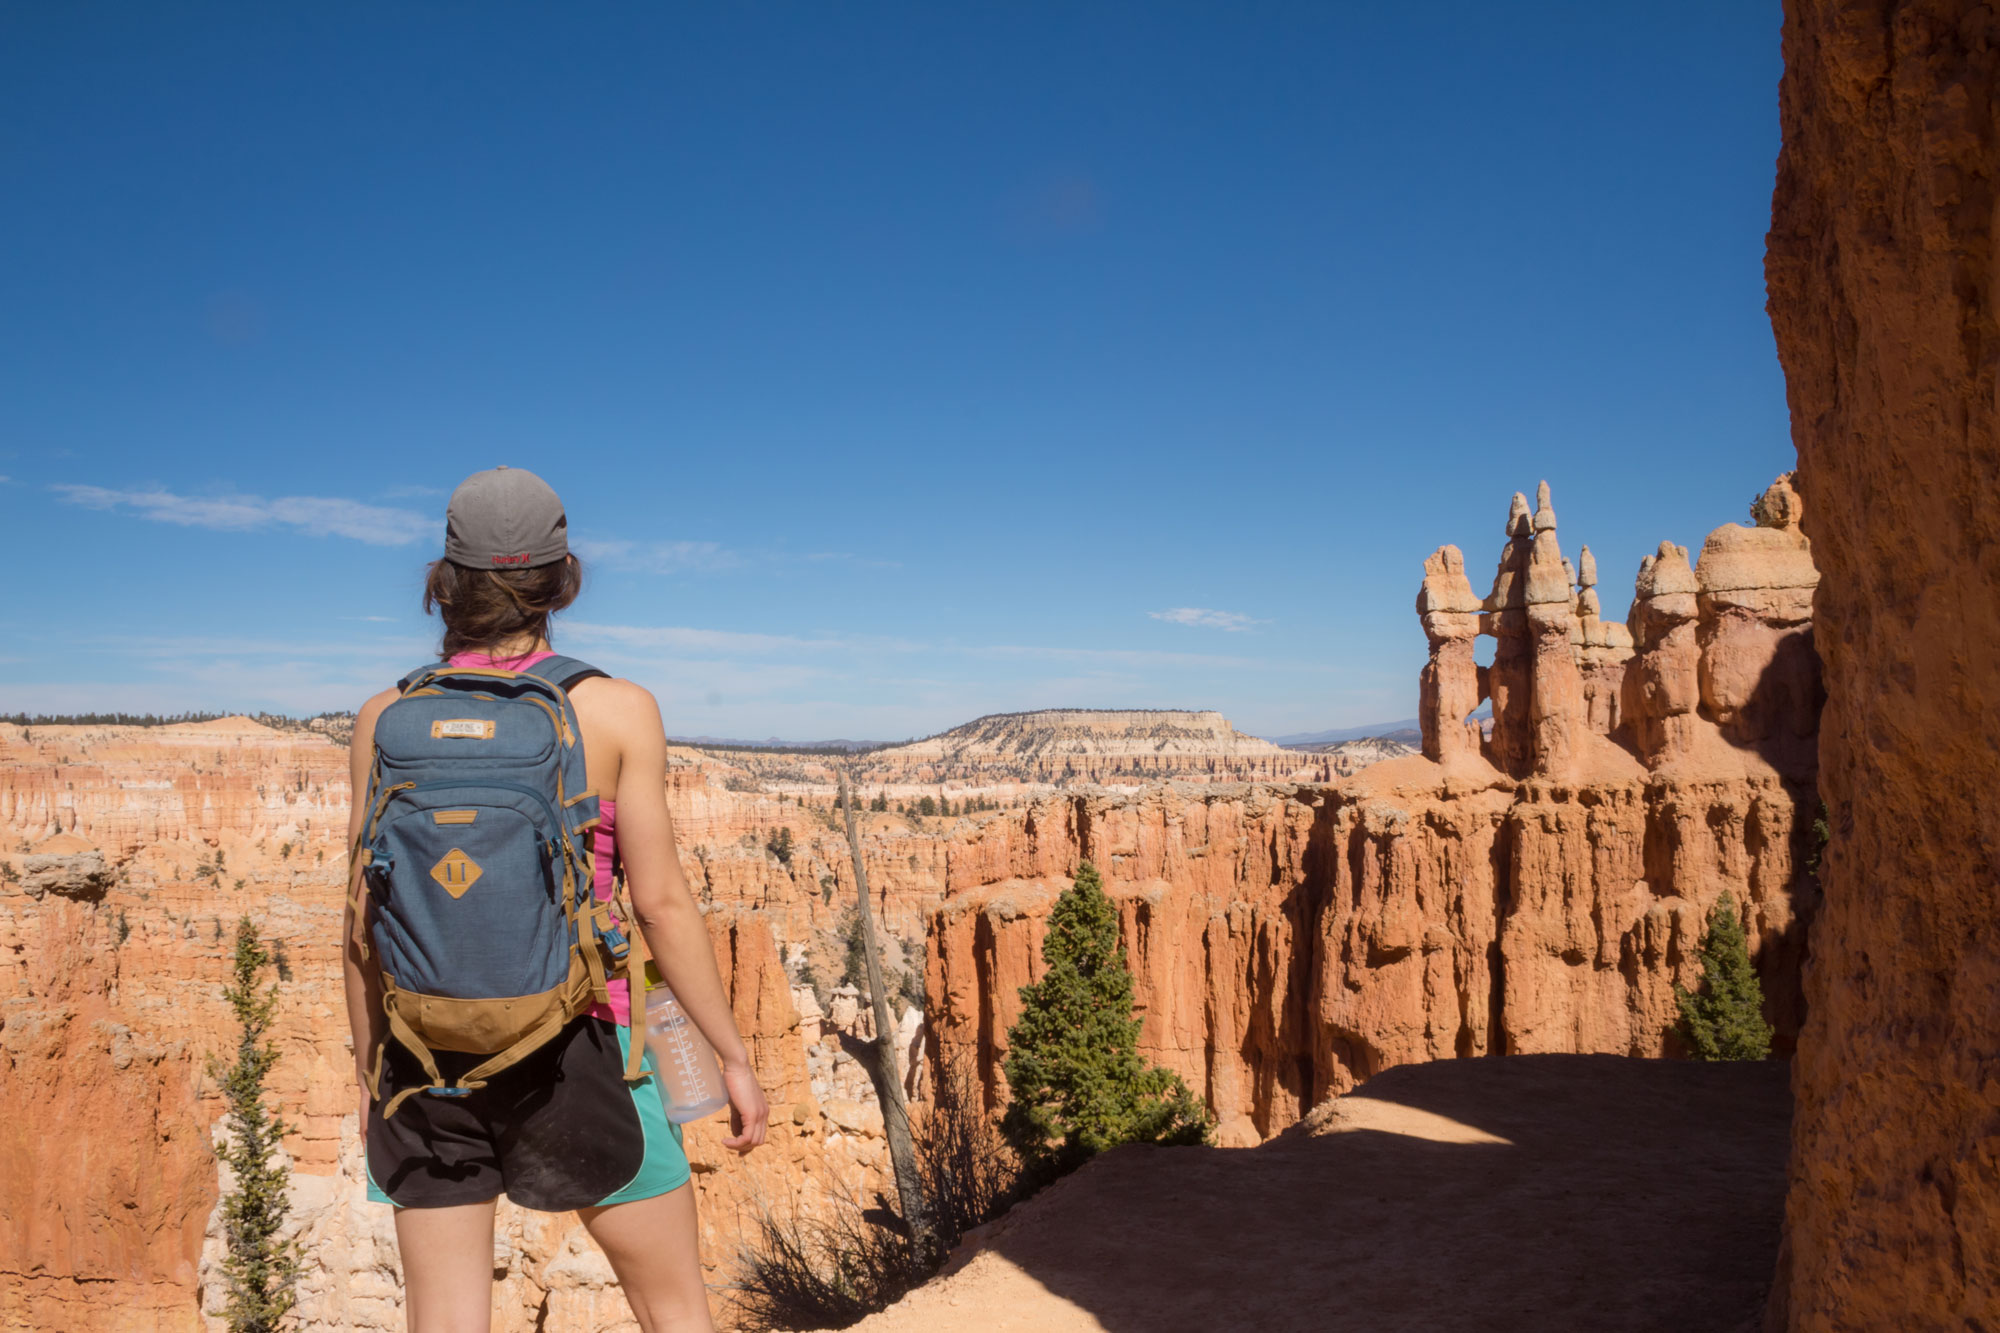 Amy-near-the-end-of-Queen's-Garden-Loop,-Bryce-Canyon-National-Park